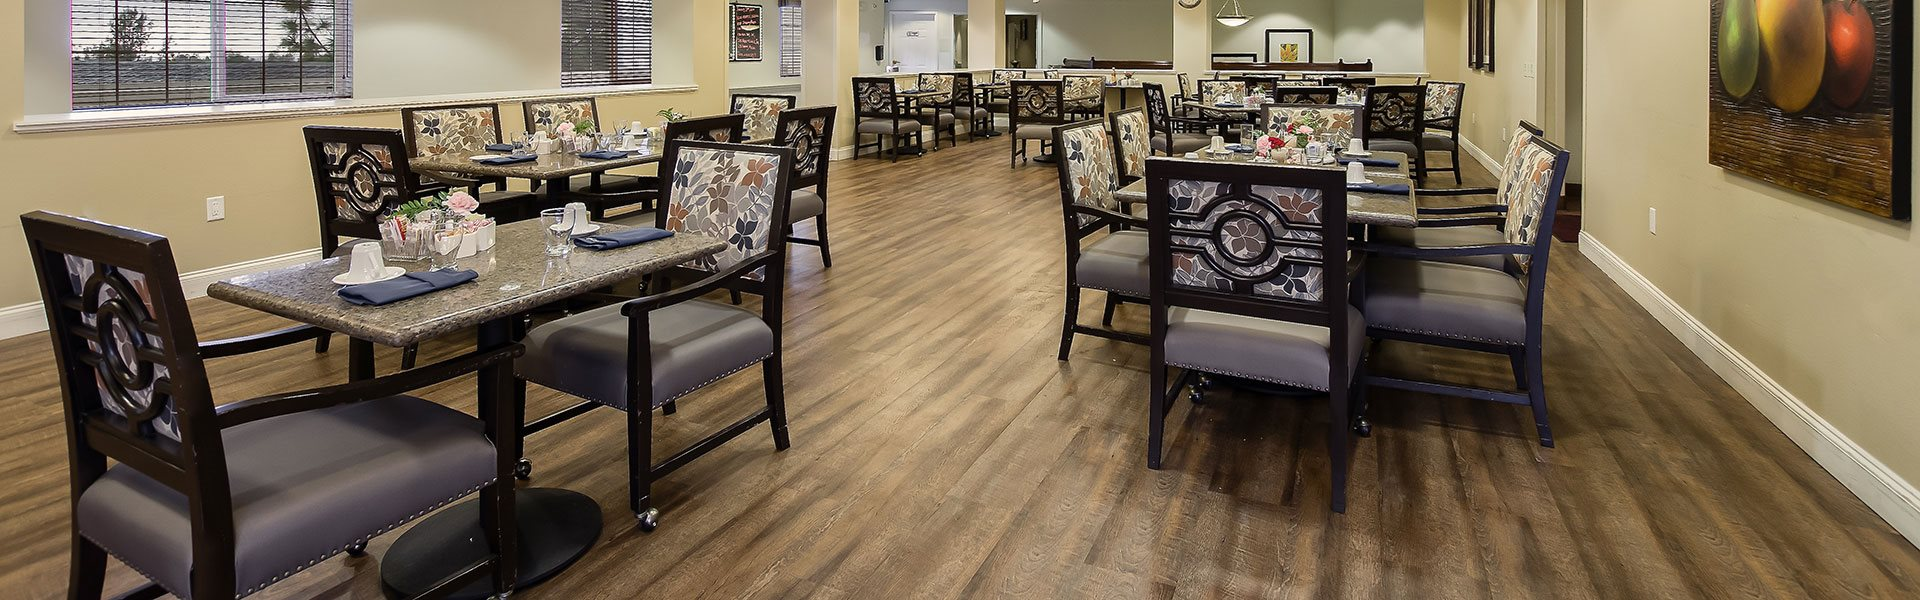 Plaza Lounge at Pacifica Senior Living Country Crest, Oroville, CA, 95966